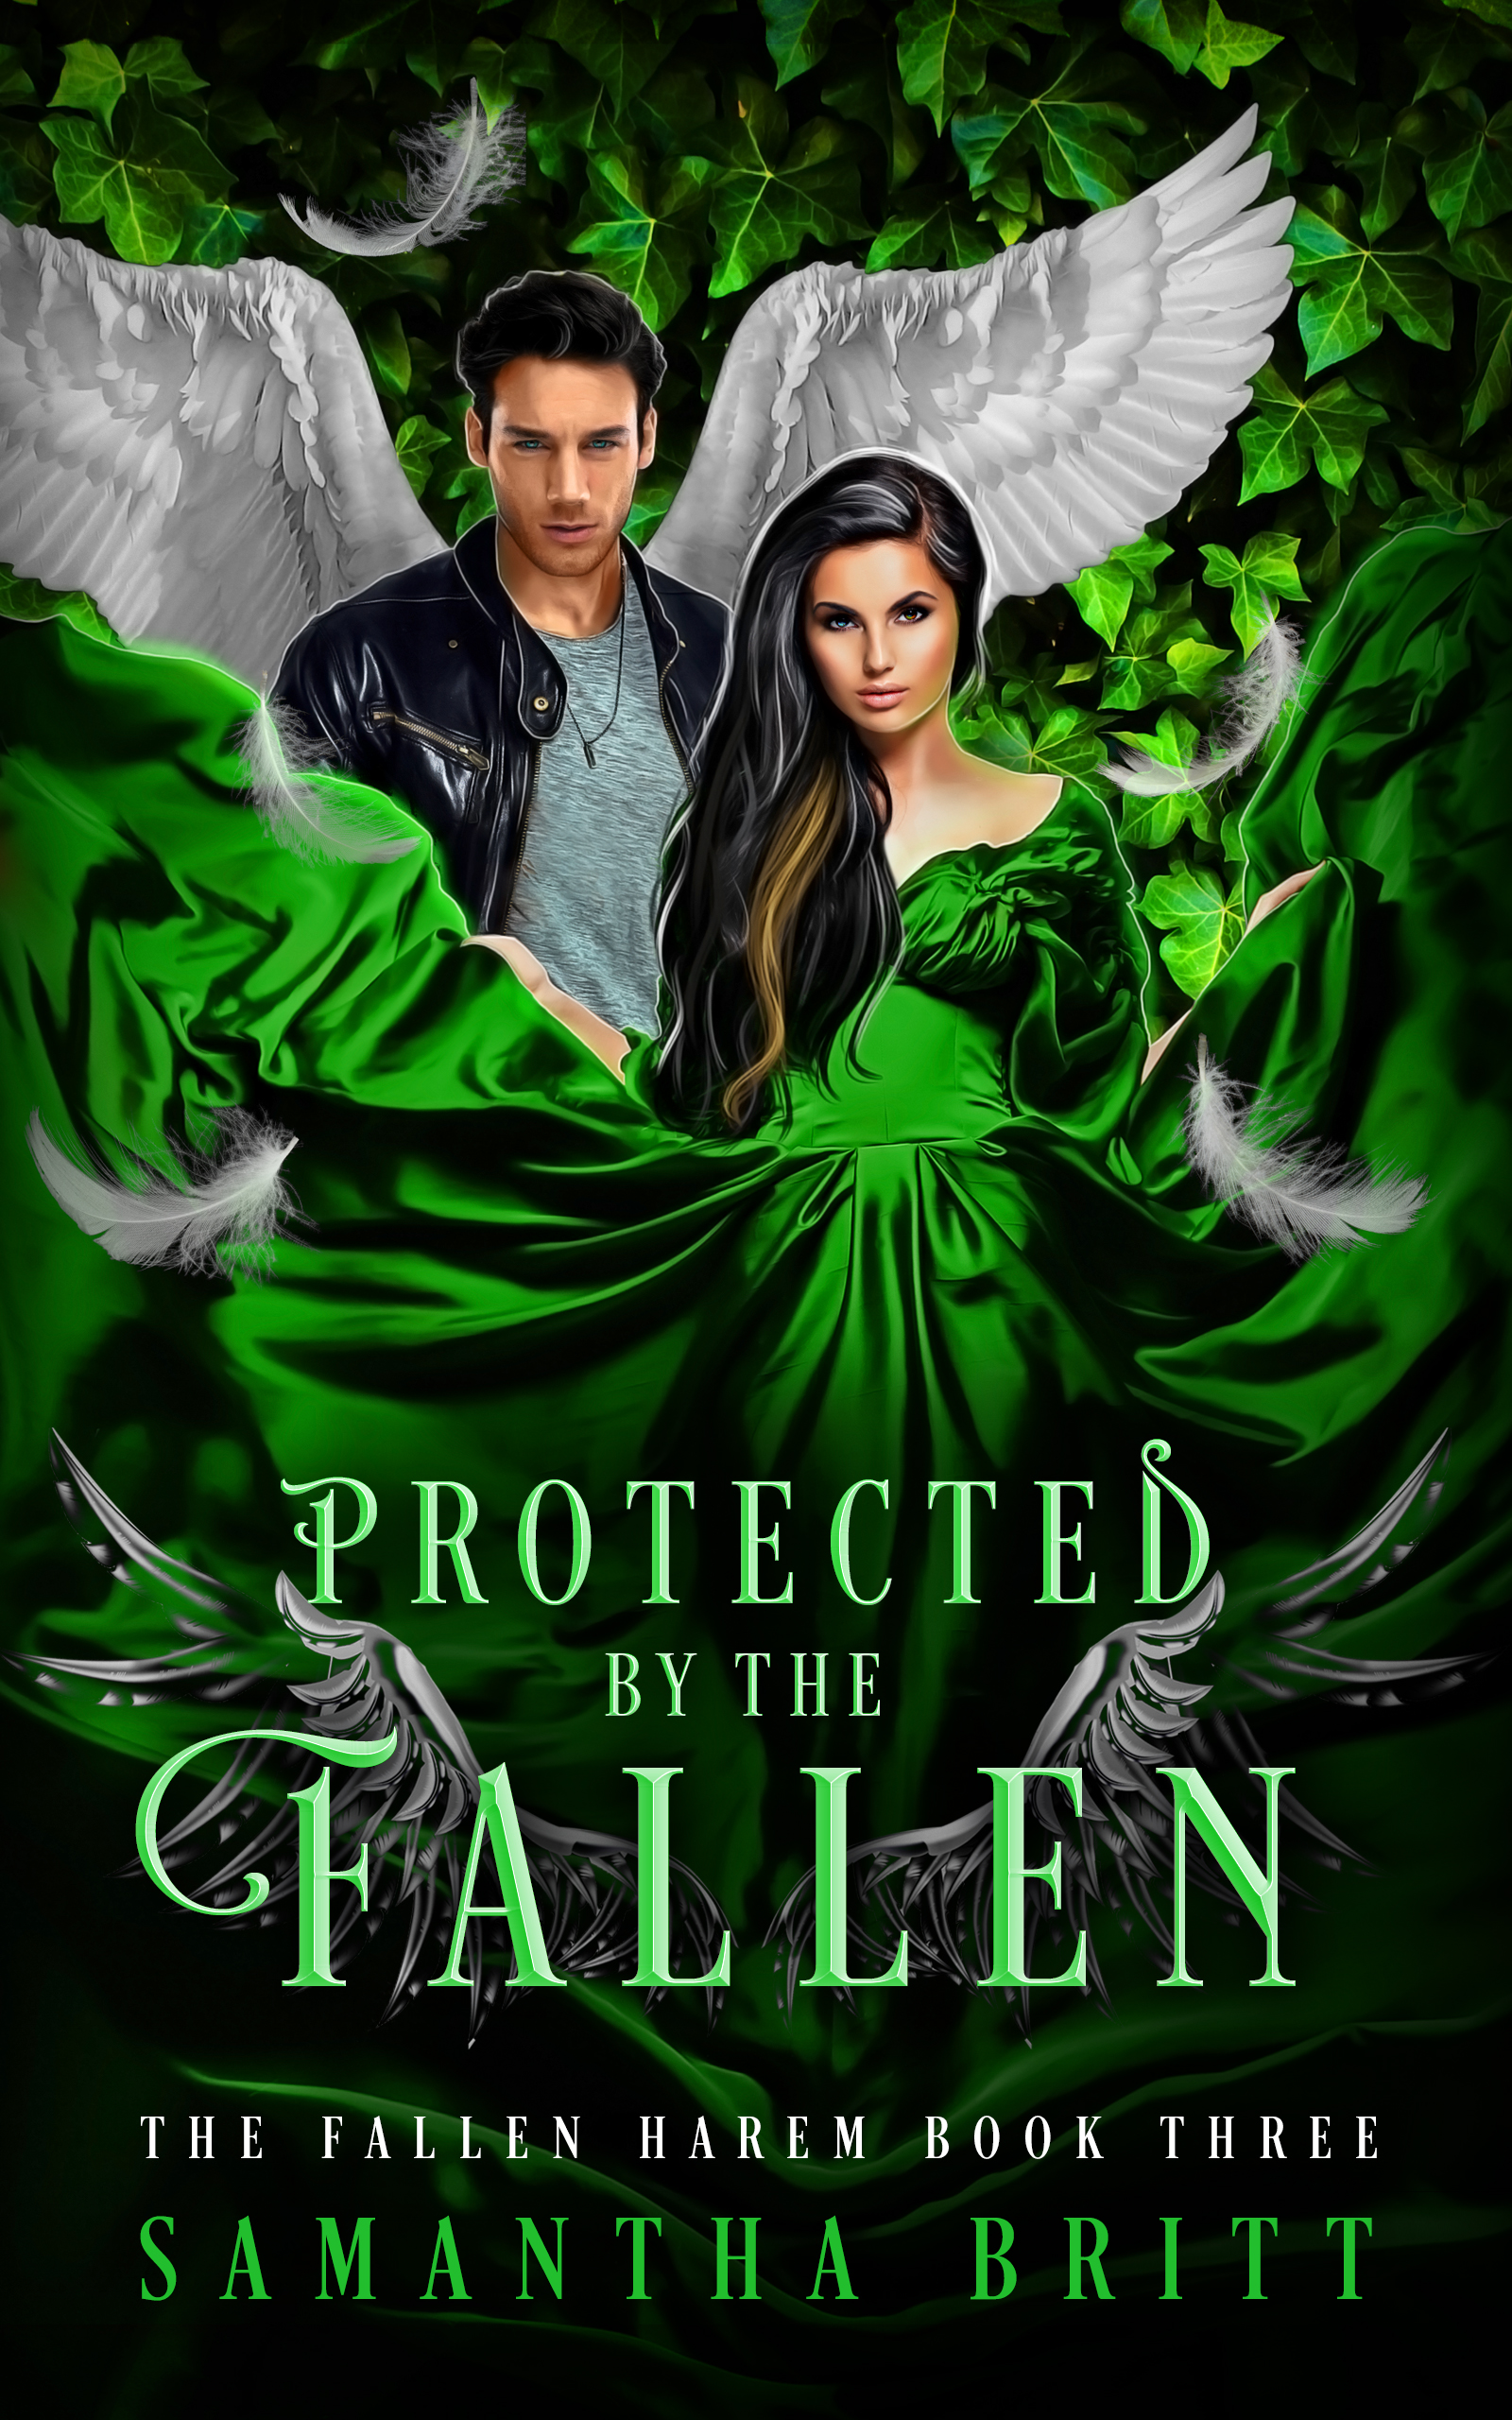 Protected by the Fallen - Book 3